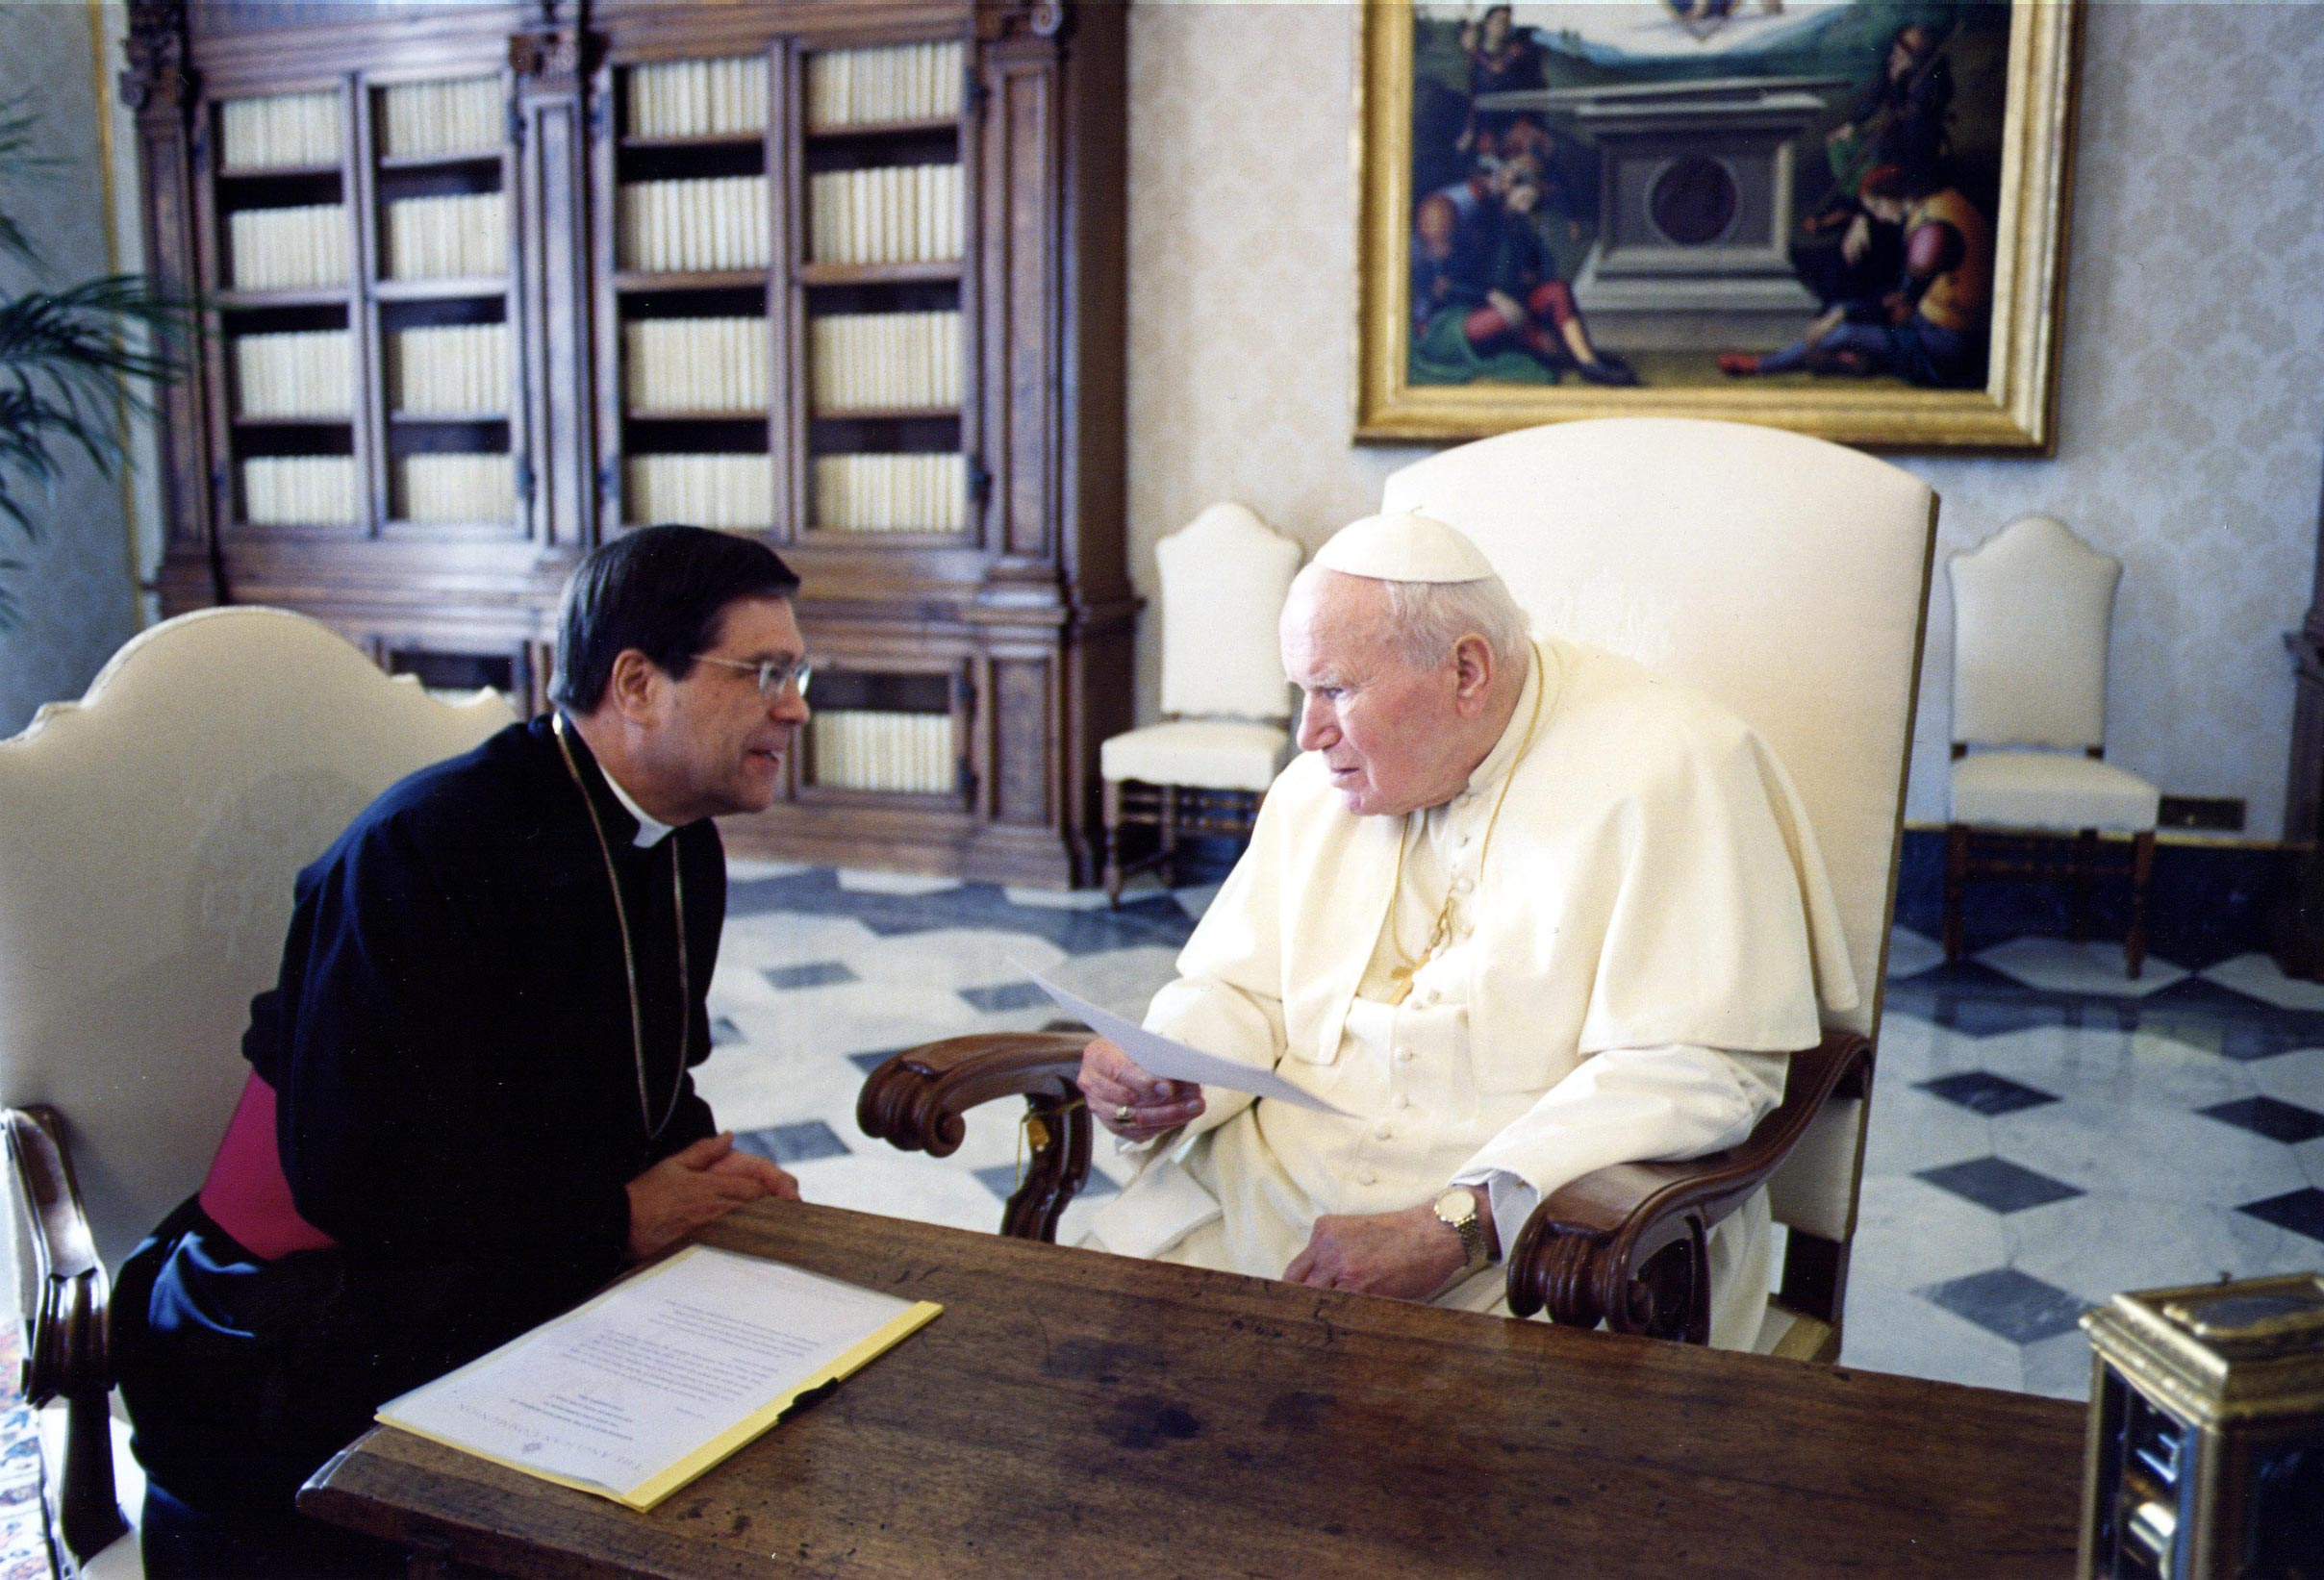 The Revd Canon John L. Peterson, the Secretary General of the Anglican Communion speaks with His Holiness Pope John Paul II at the Vatican